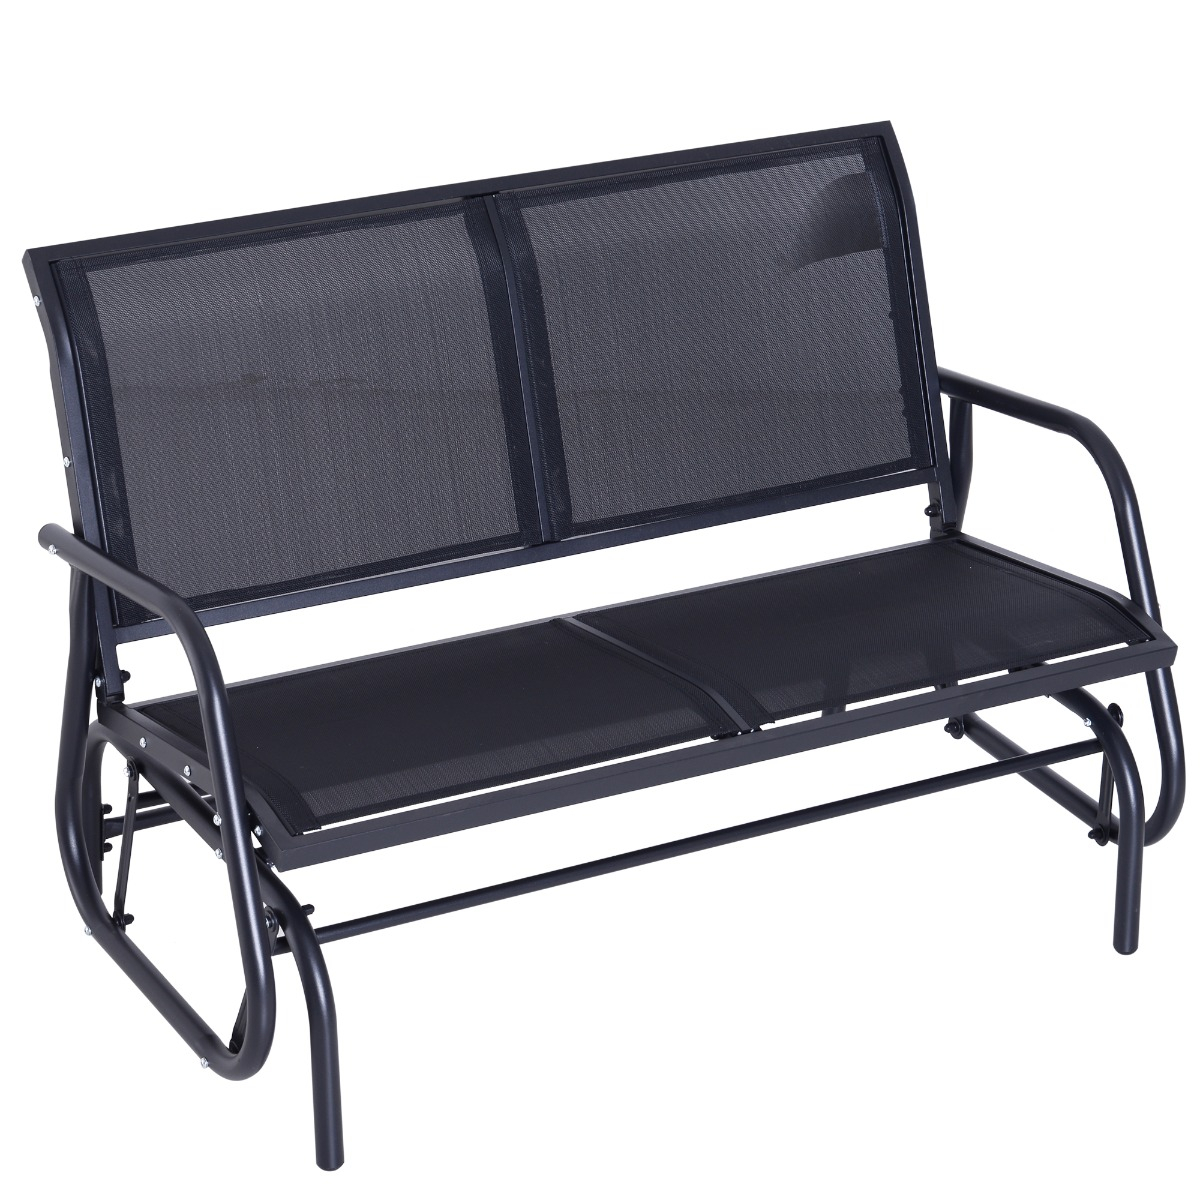 Outsunny Patio Double Glider Bench Swing Chair Rocker Heavy Duty Outdoor  Garden Black Intended For Black Outdoor Durable Steel Frame Patio Swing Glider Bench Chairs (Image 17 of 25)